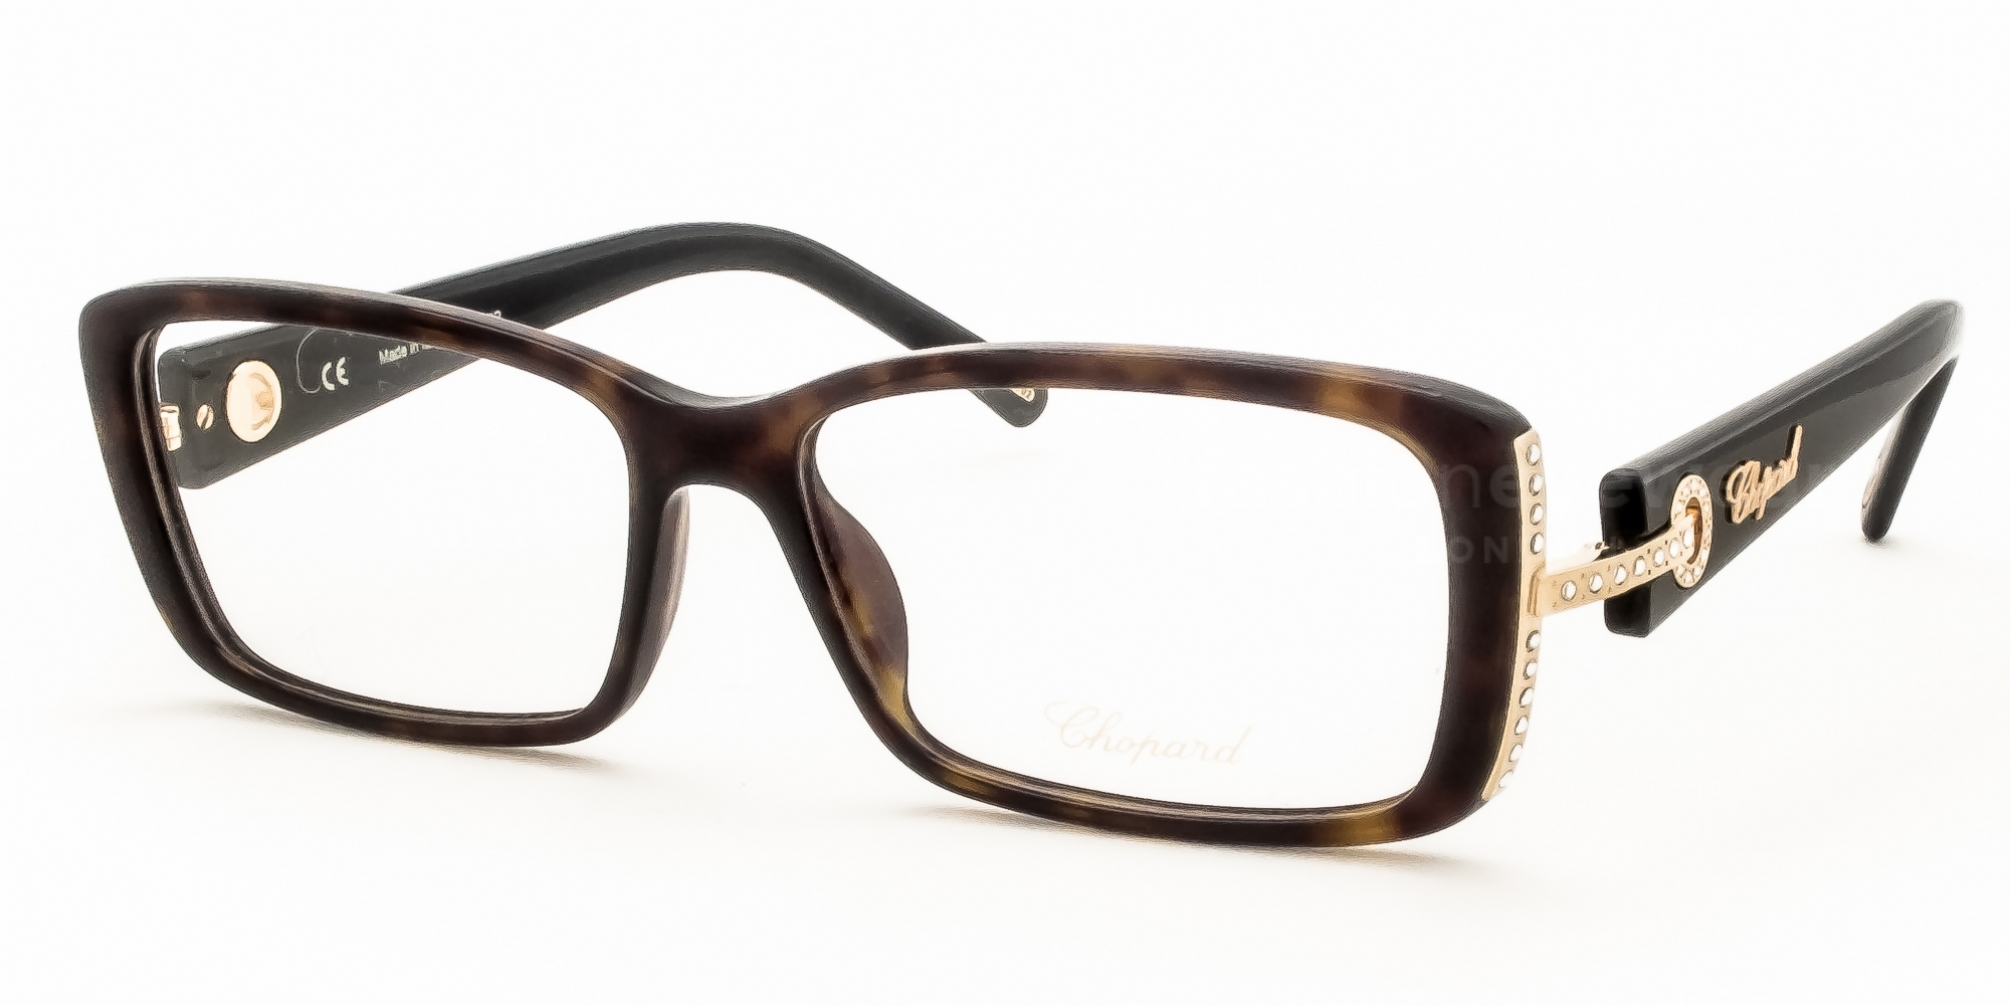 8d772ac1dc Buy Chopard Eyeglasses directly from OpticsFast.com